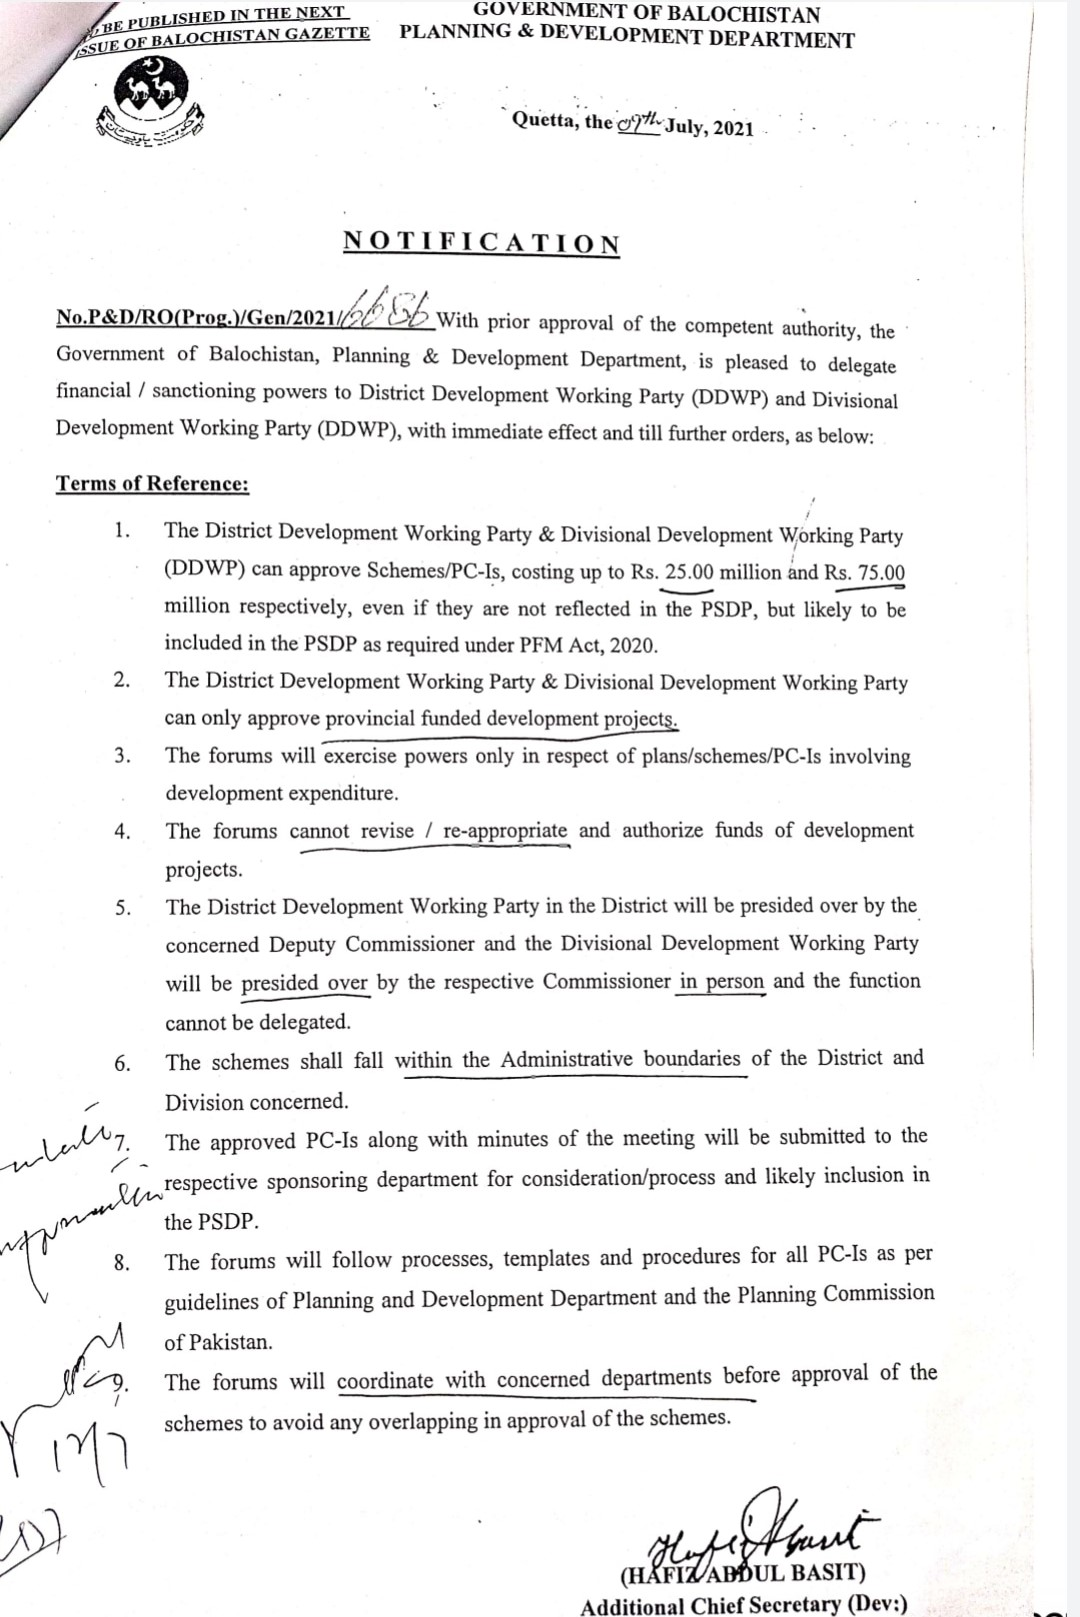 Notification | Delegation of Financial / Sanctioning Powers to District Development Working Party (DDWP) and Divisional Development Working Party (DDWP) | Government of Balochistan Planning & Development Department | July 09, 2021 - allpaknotifications.com